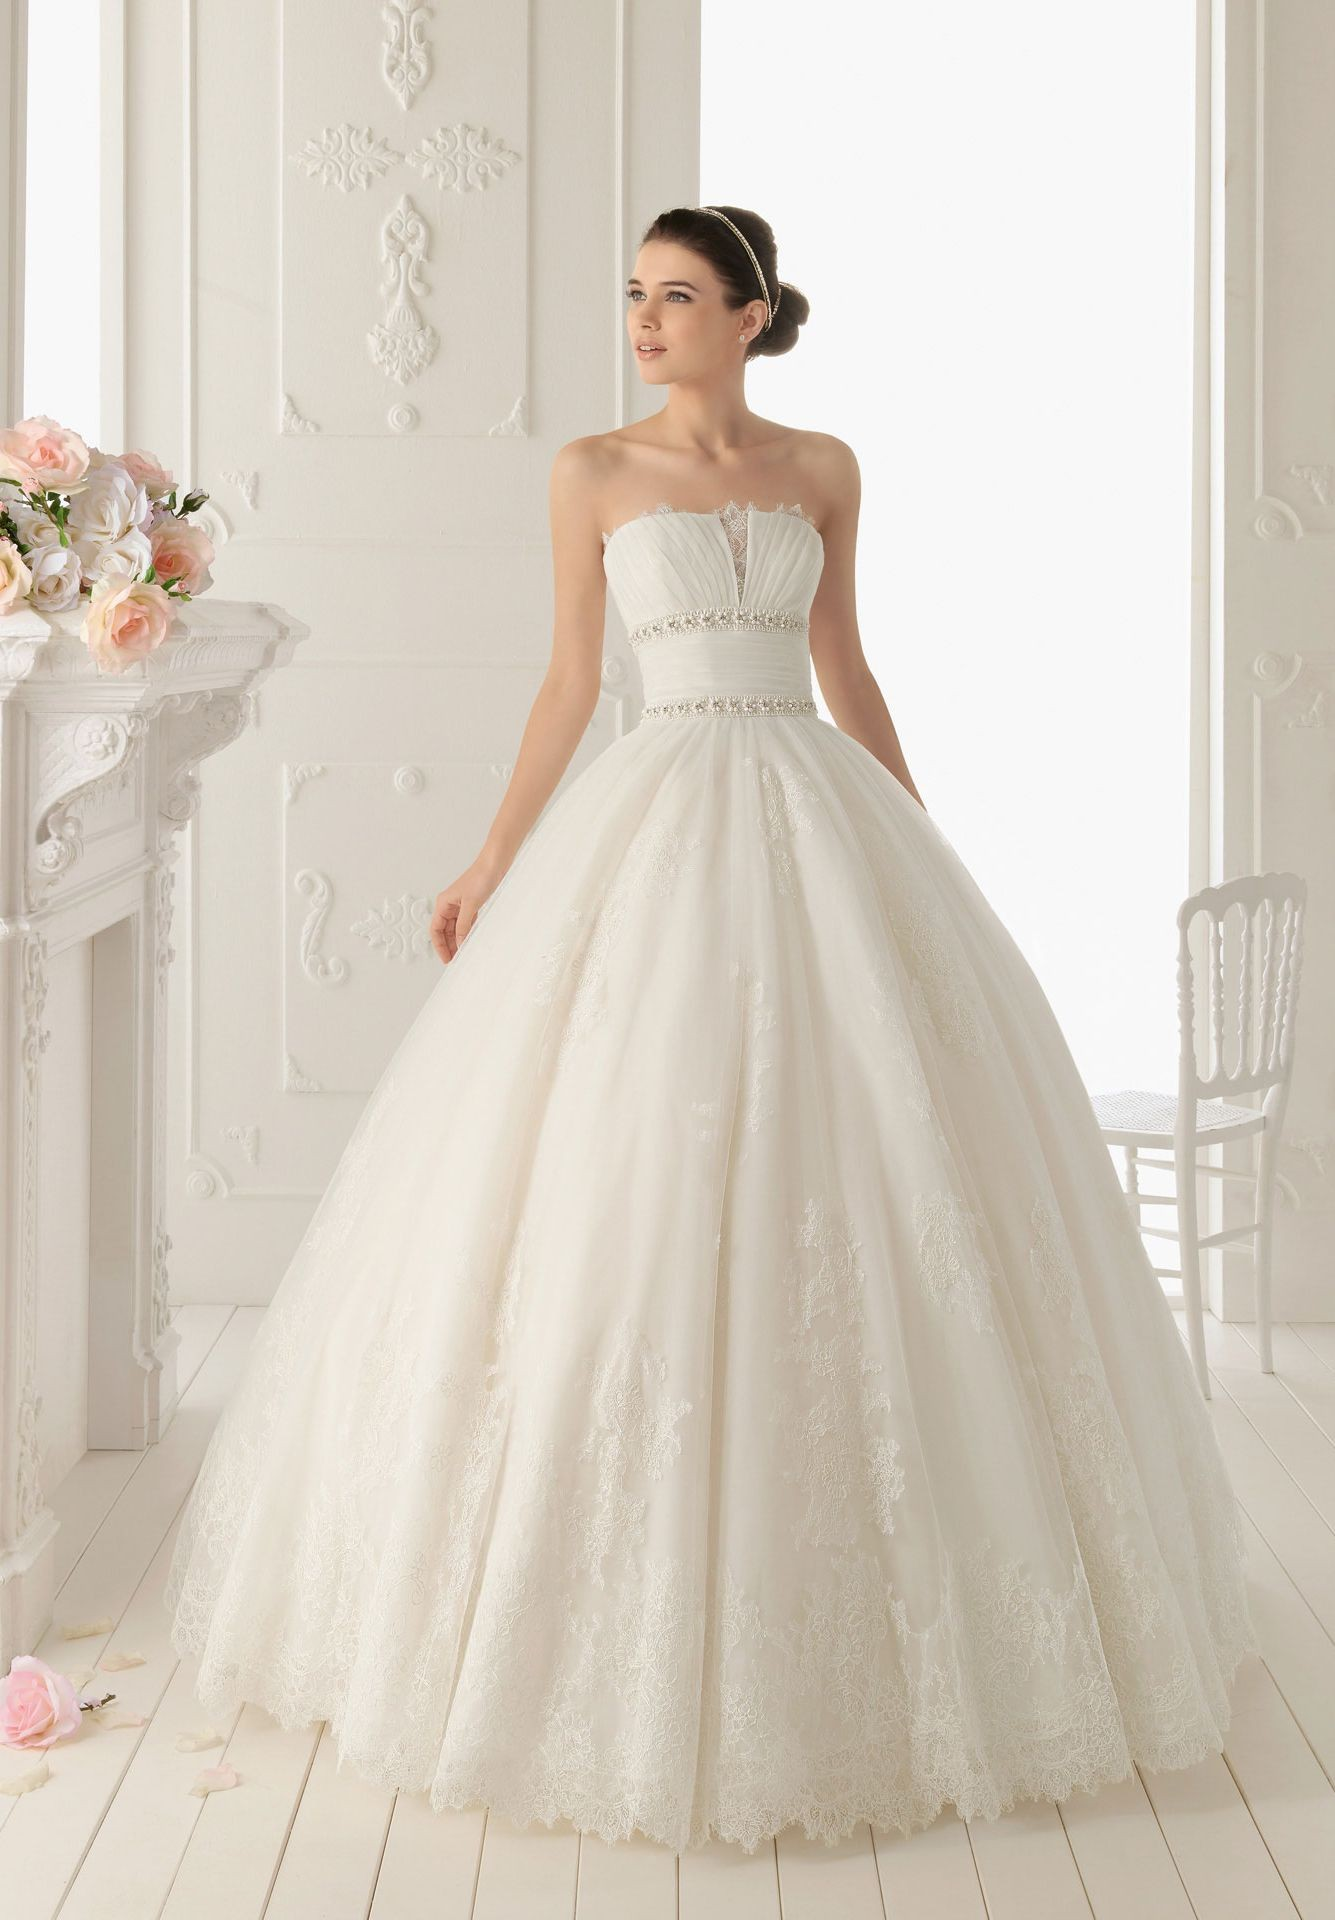 Breathtaking find your dream wedding dress lifestuffs for Lace dresses for weddings